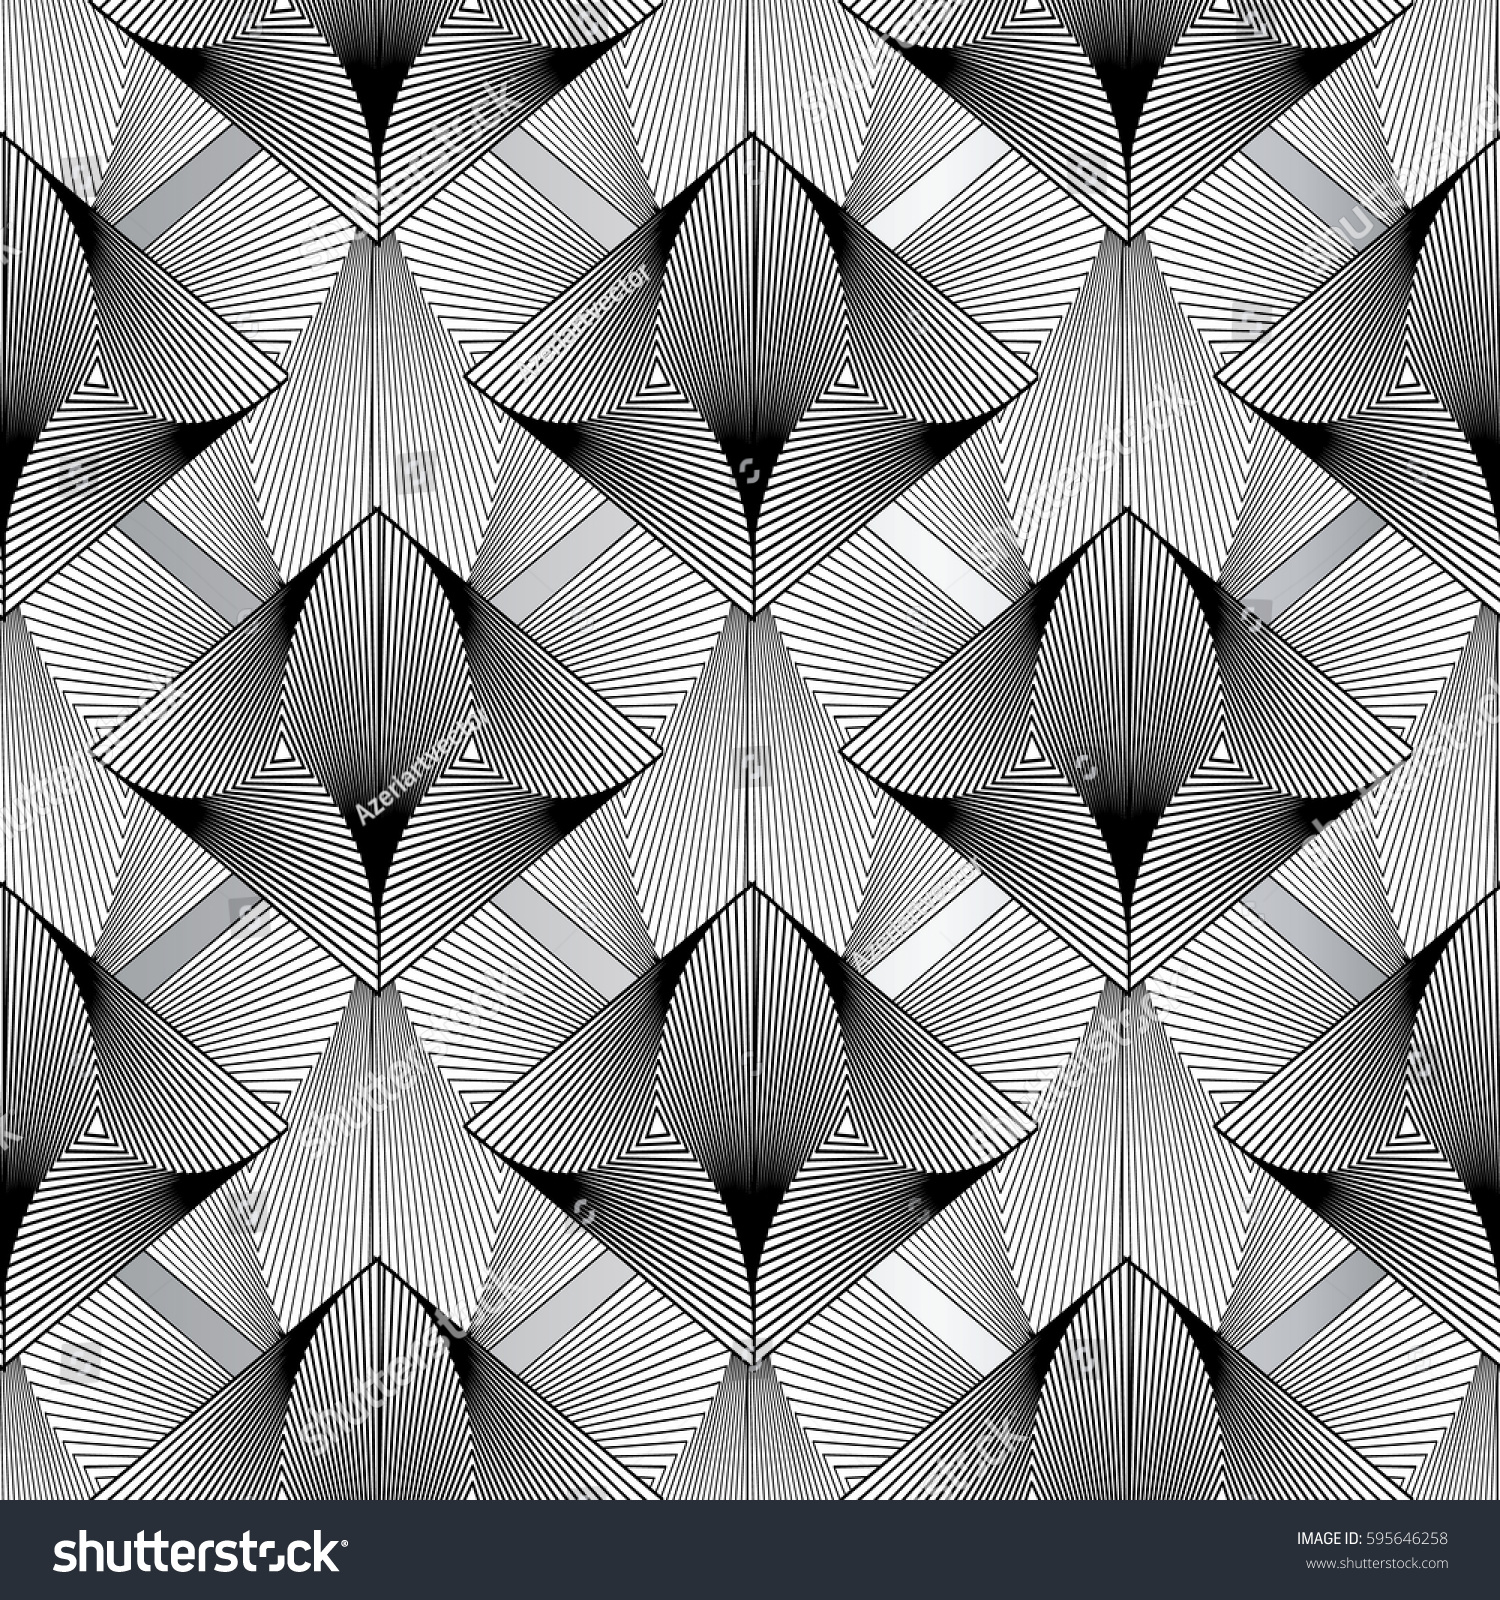 Modern 3d Geometric Seamless Pattern Stylish Abstract Isolated Black And White Floral Background Luxury